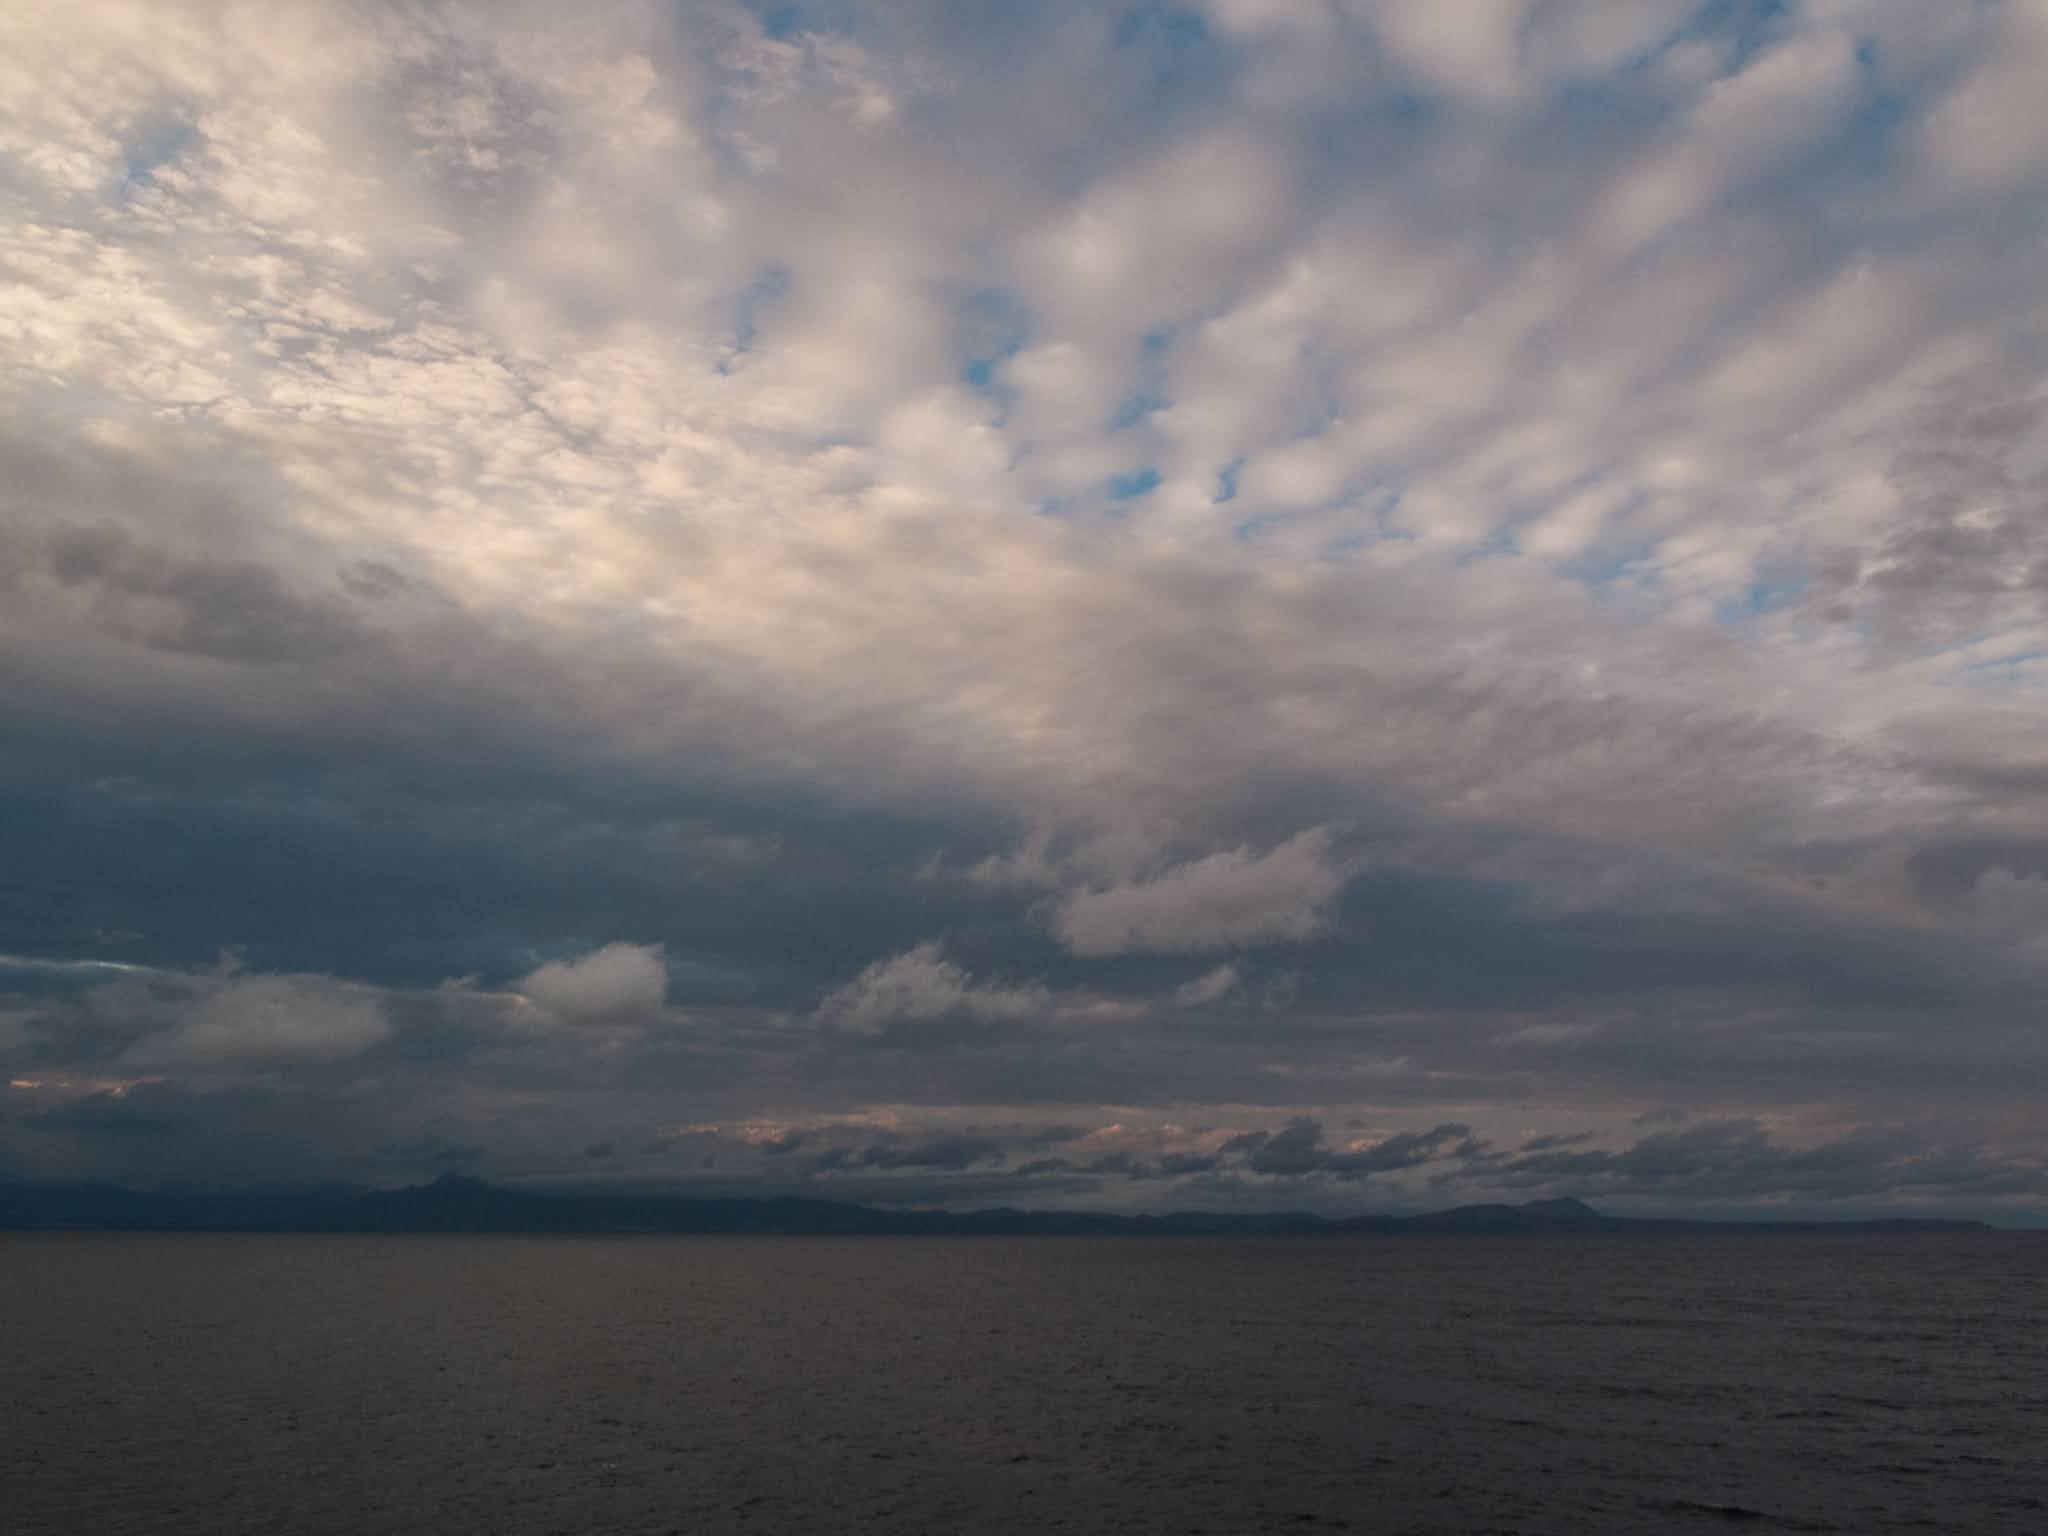 Cloud formations over the Balearic Sea.